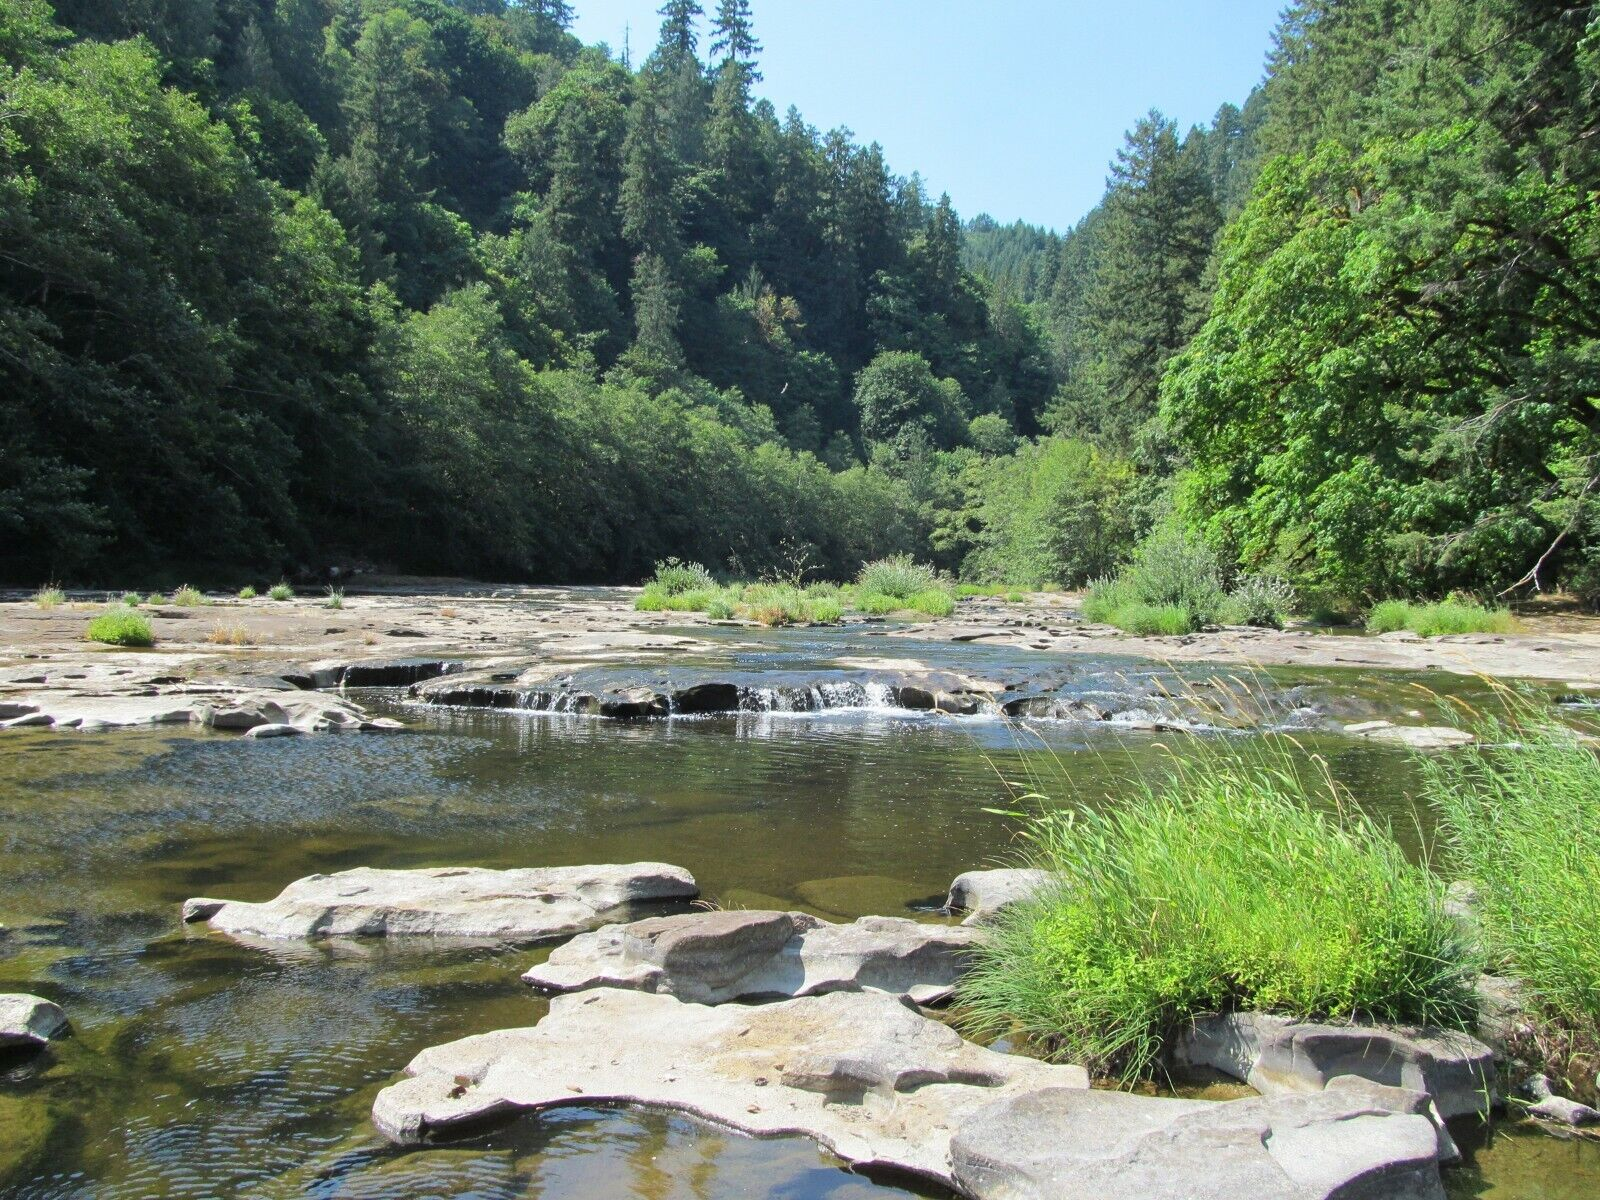 Oregon Placer Gold Mine on Smith River Mining Claim Creek Panning Sluice OR